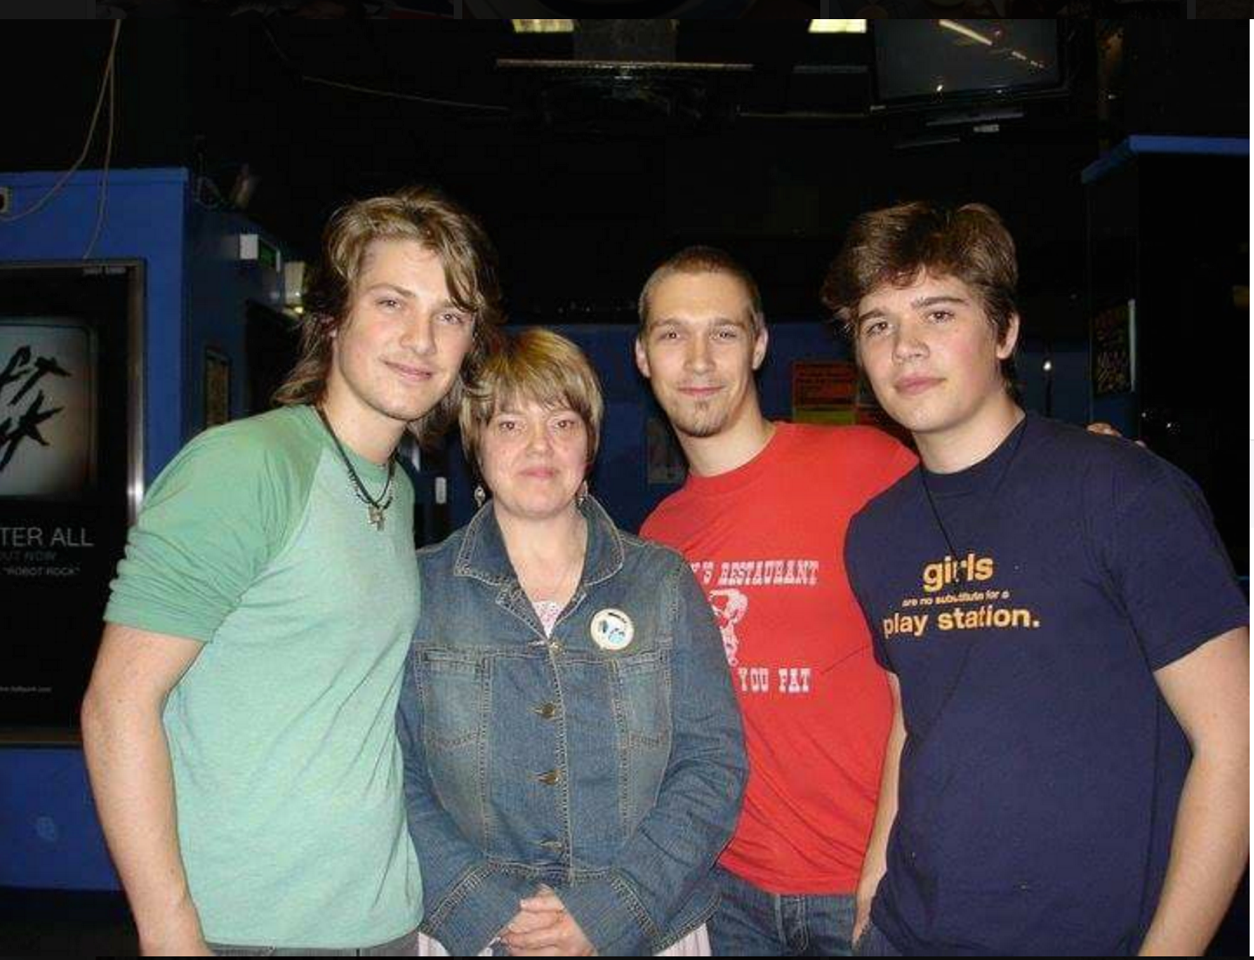 Chris with Hanson in 2005